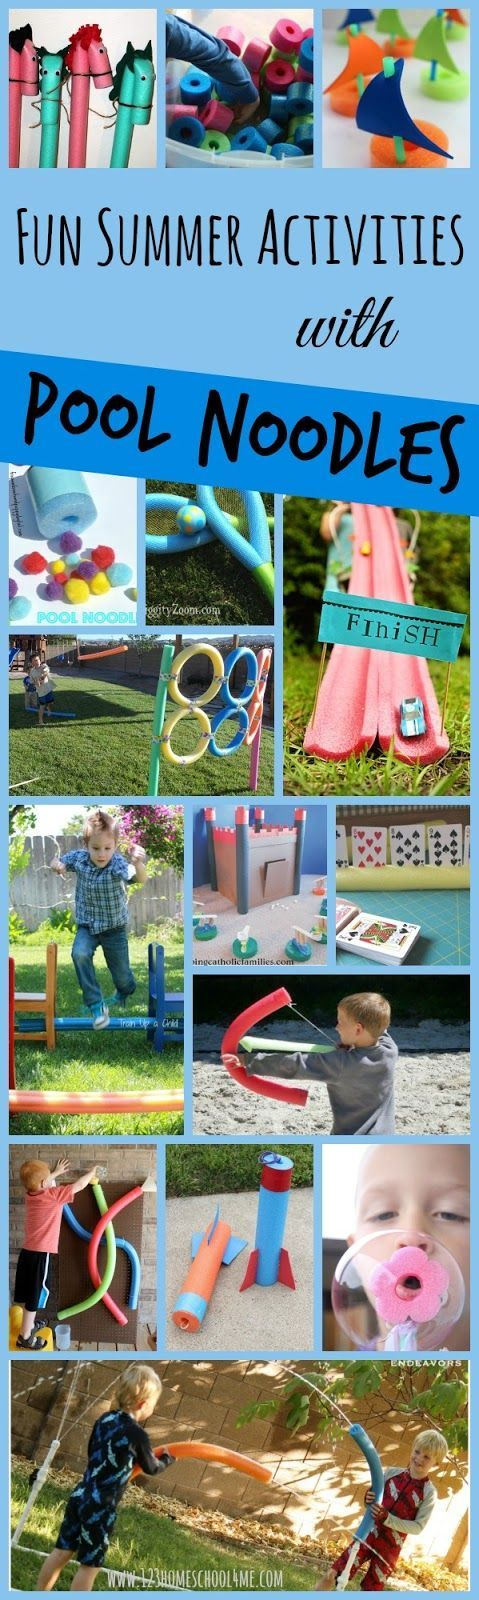 Fun Summer Activities with Pool Noodles - over 30 creative and outrageously fun kids activities for summer. Great for kids of all ages; outdoor and indoor activities.